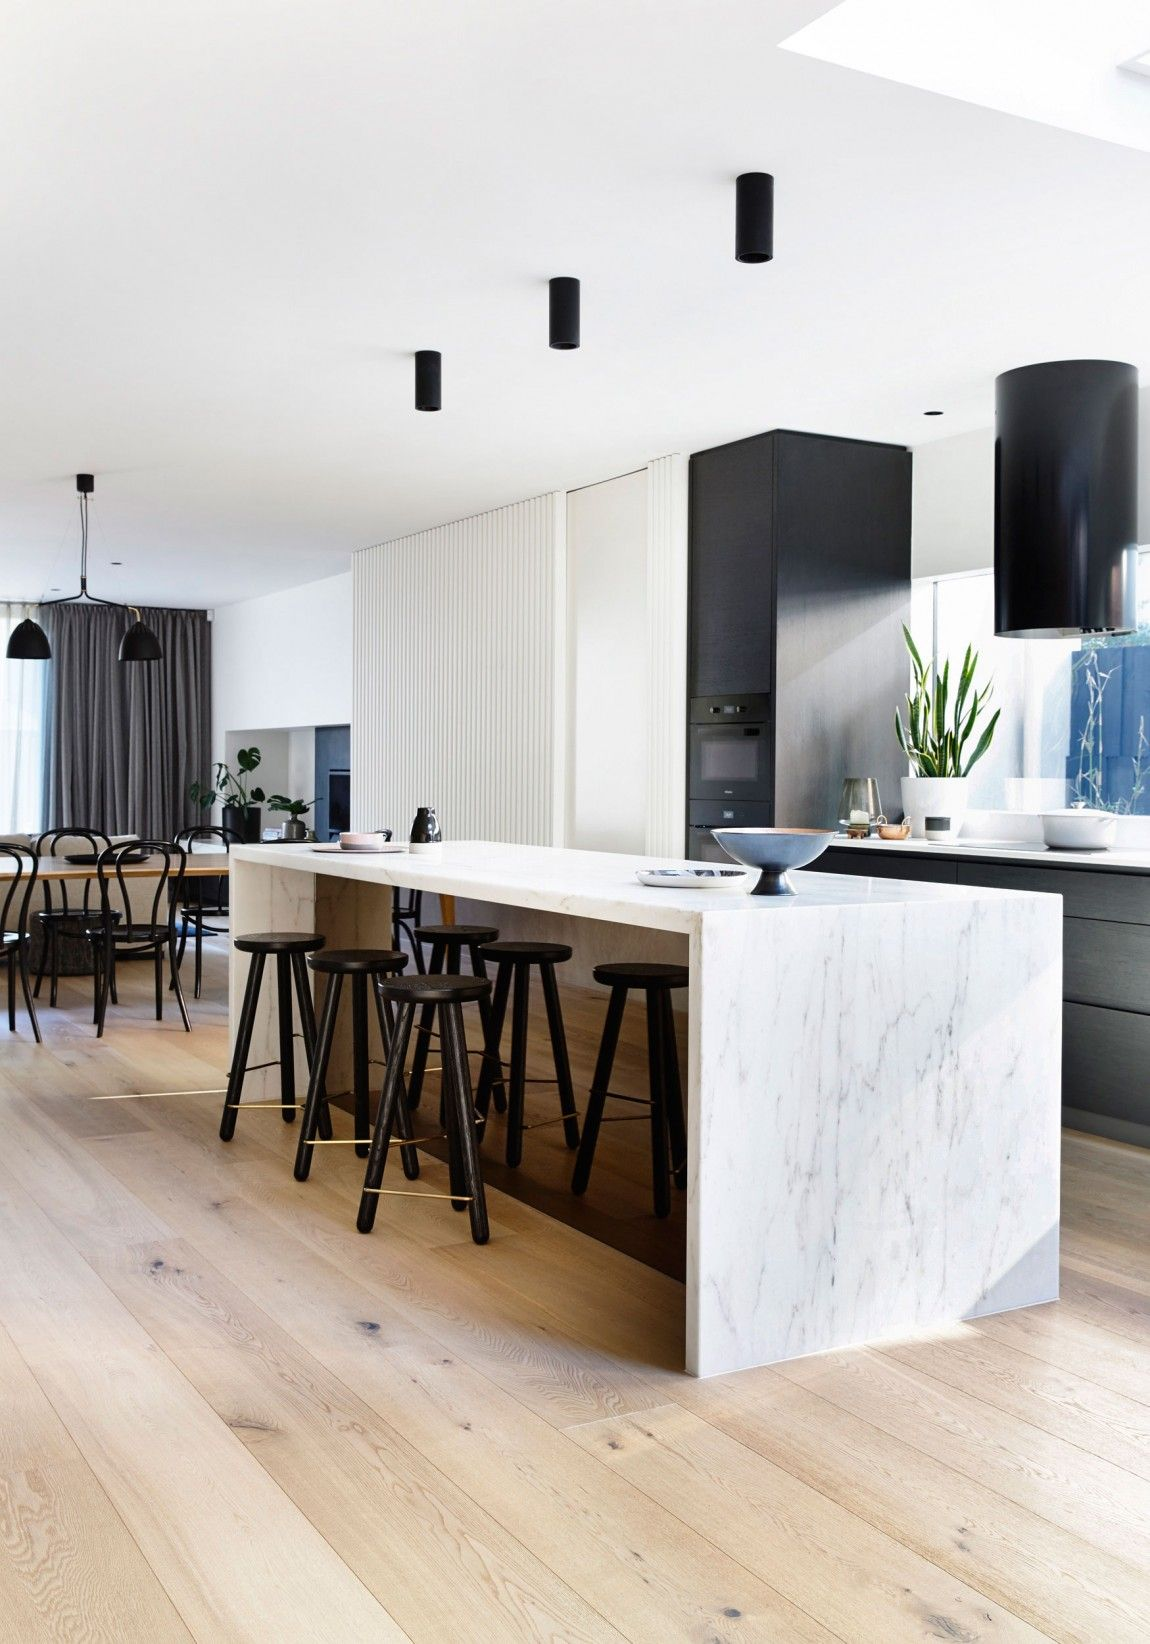 Inform Designs A Private Residence To Double As A Yoga Studio In Elwood Australia Interior Design Kitchen Small Modern Kitchen Design Kitchen Decor Modern